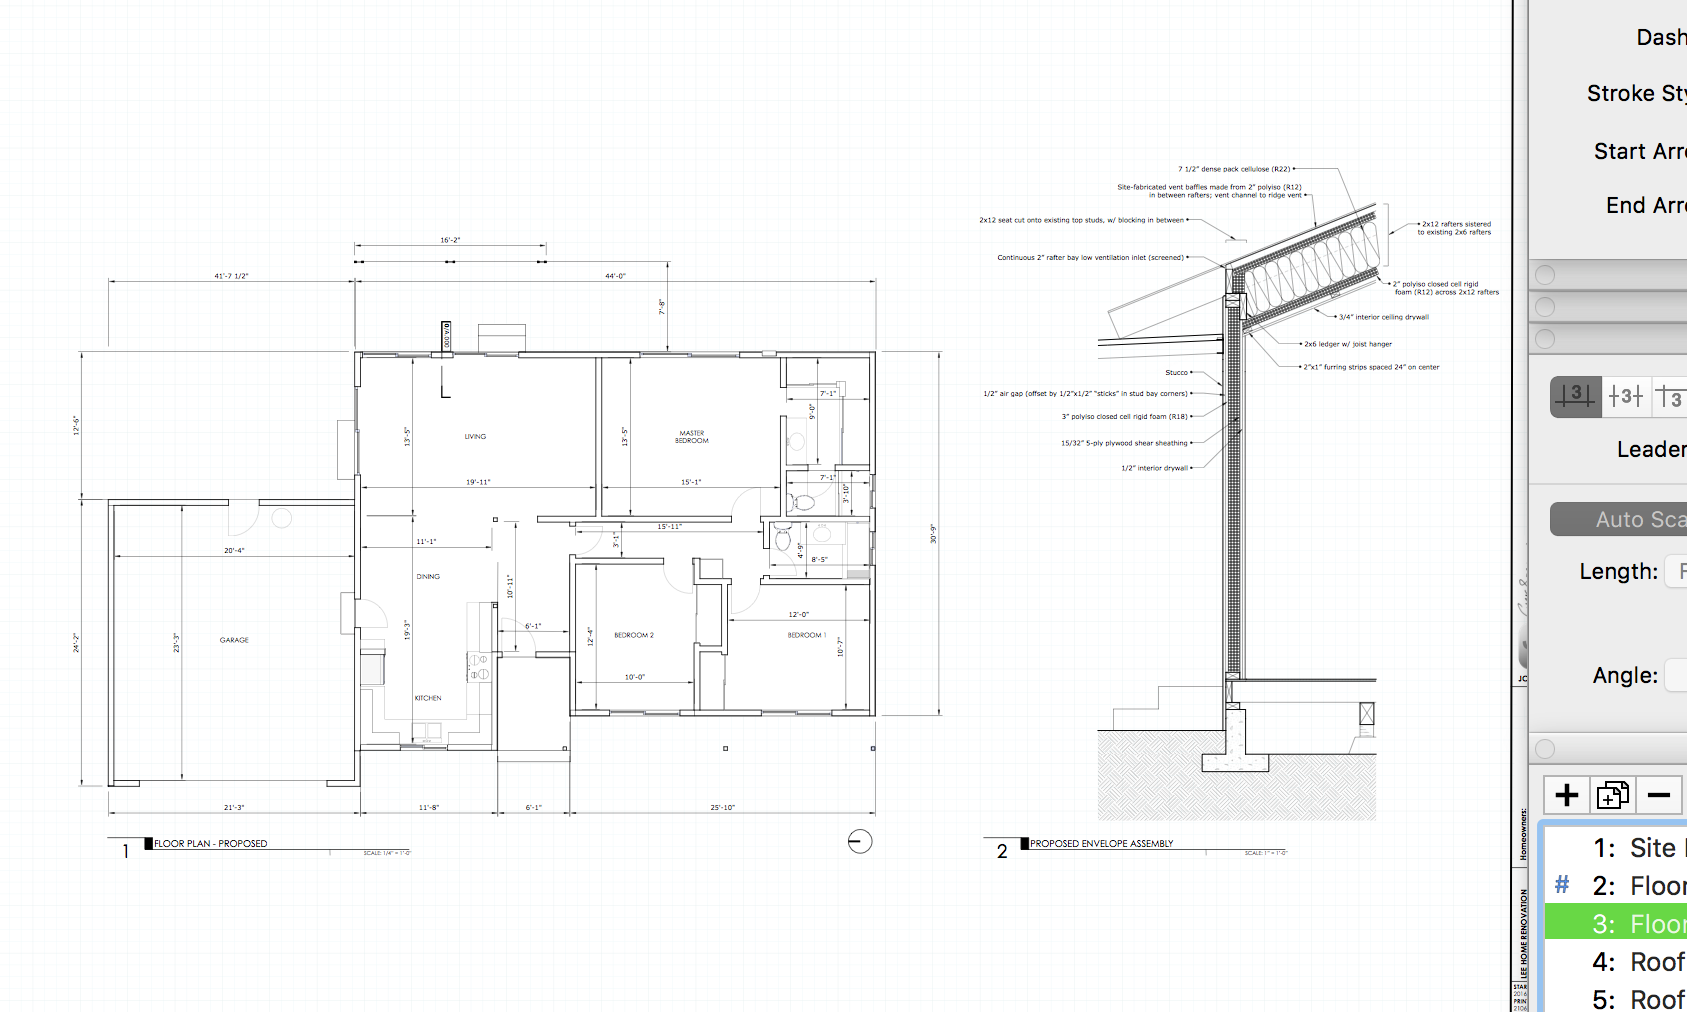 Architectural drawings generated in Layout from the SketchUp building model using the process described in  The SketchUp Workflow for Architecture